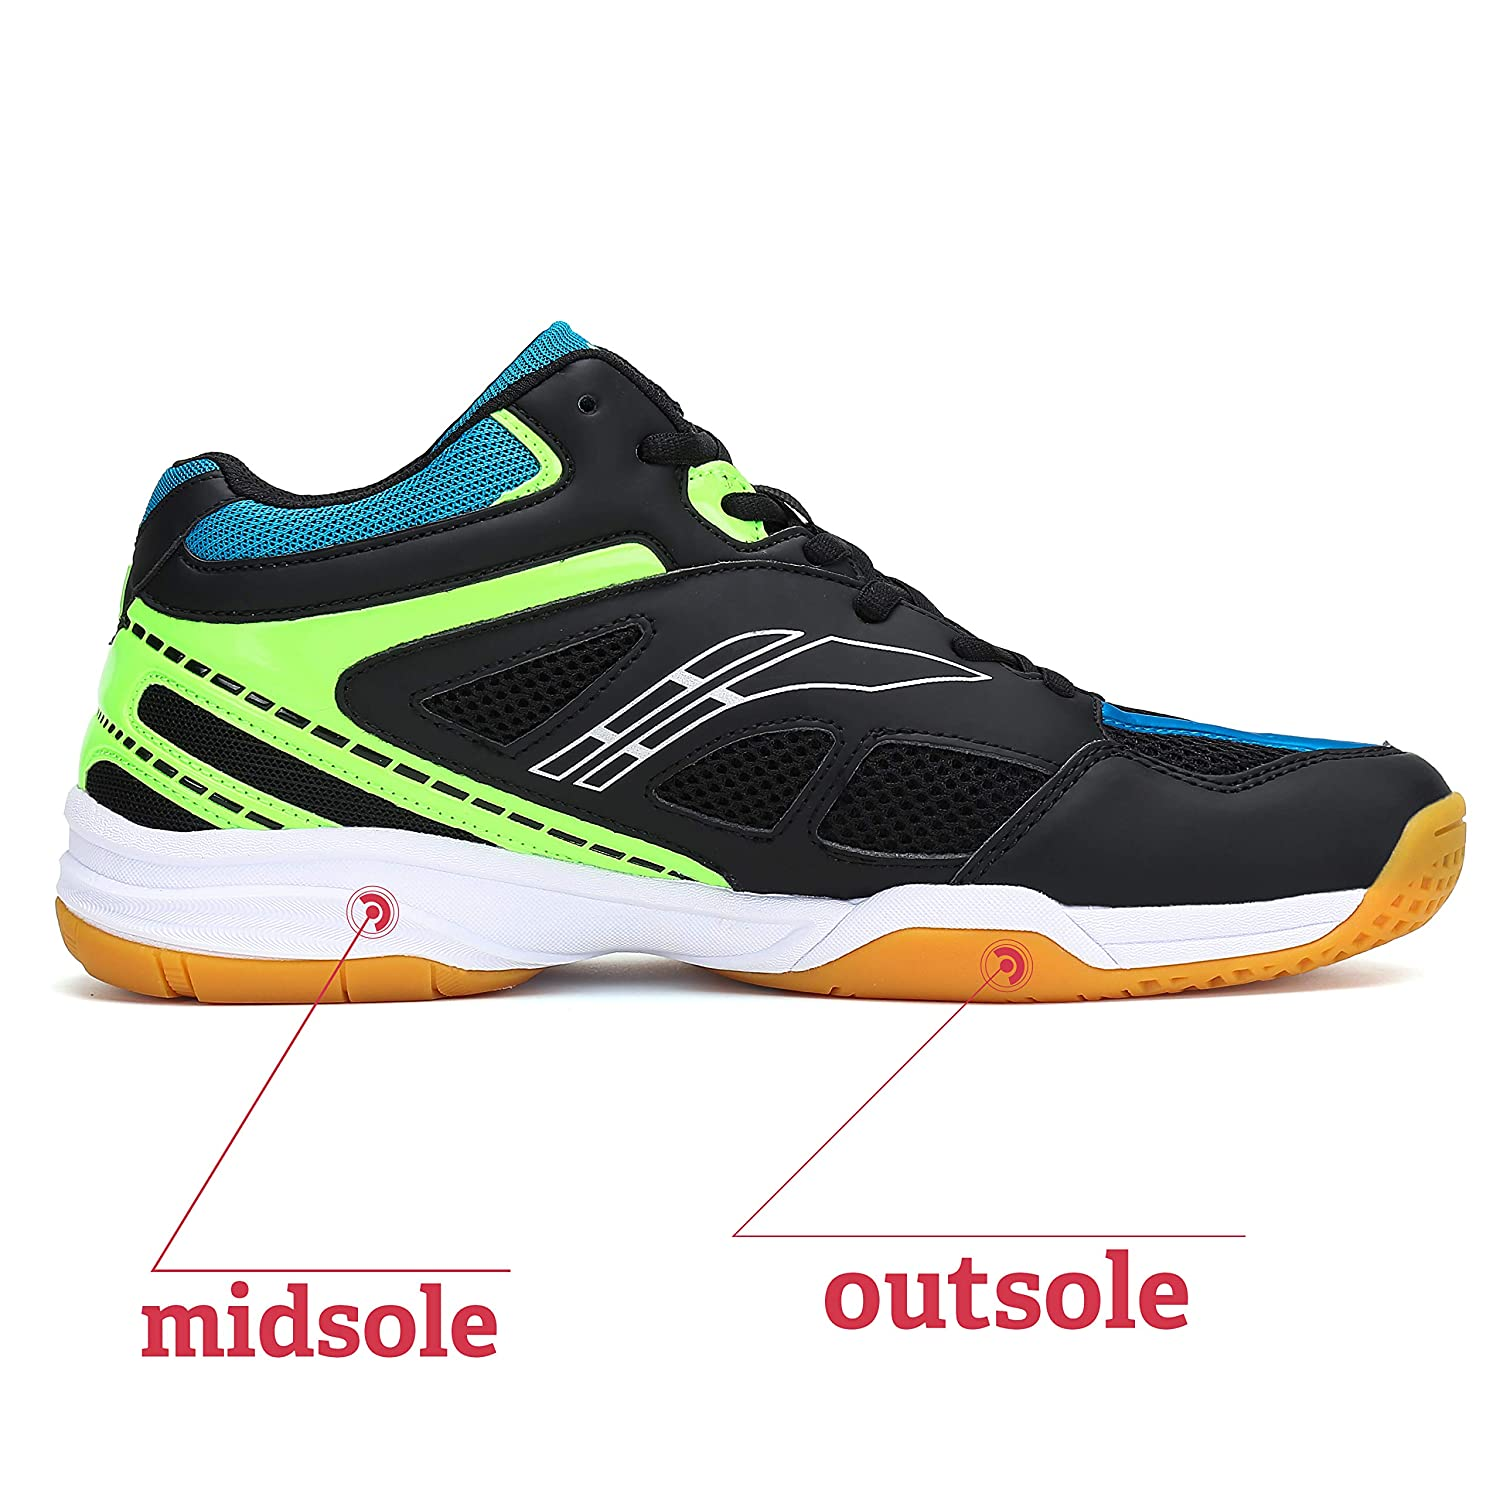 Fashiontown Athletic Mens Sneakers Badminton Shoes Non Slip Indoor Court Outdoor Safety Training Shoe